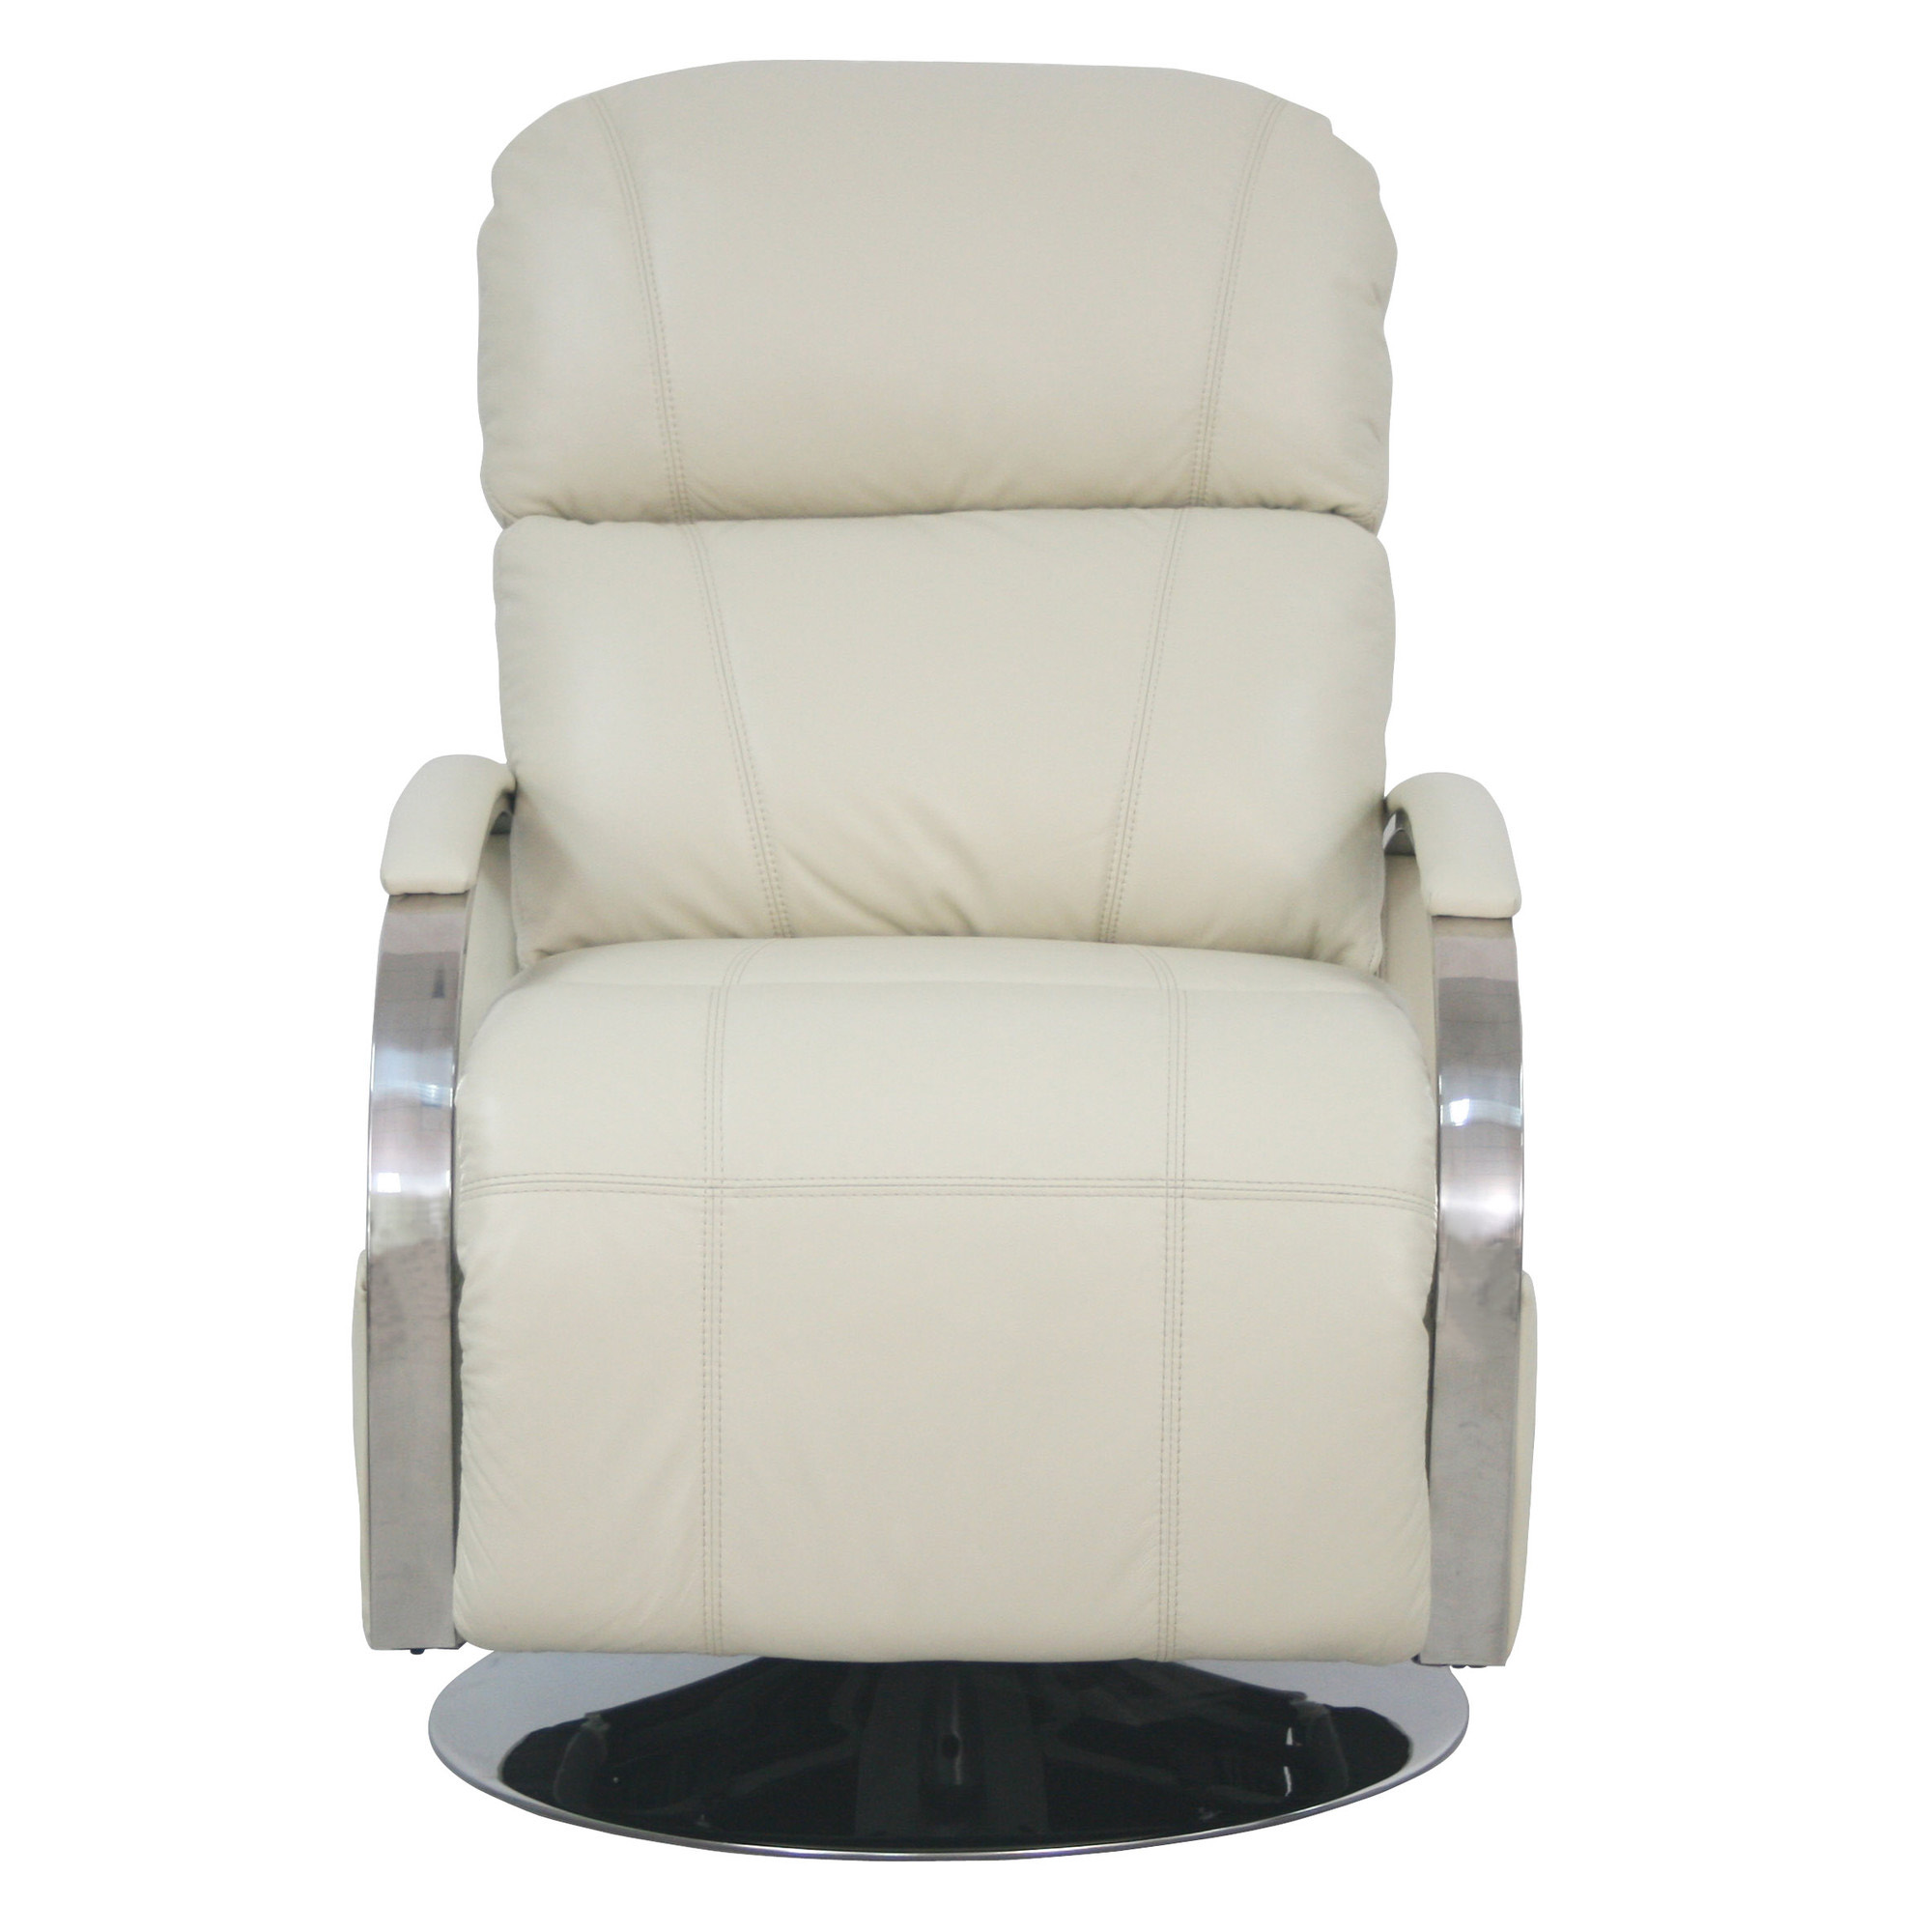 Barcalounger Regal II Cream Leather Recliner Chair  sc 1 st  Vitalitywebb.com & Barcalounger Regal II Leather Recliner Chair - Leather Recliner ... islam-shia.org